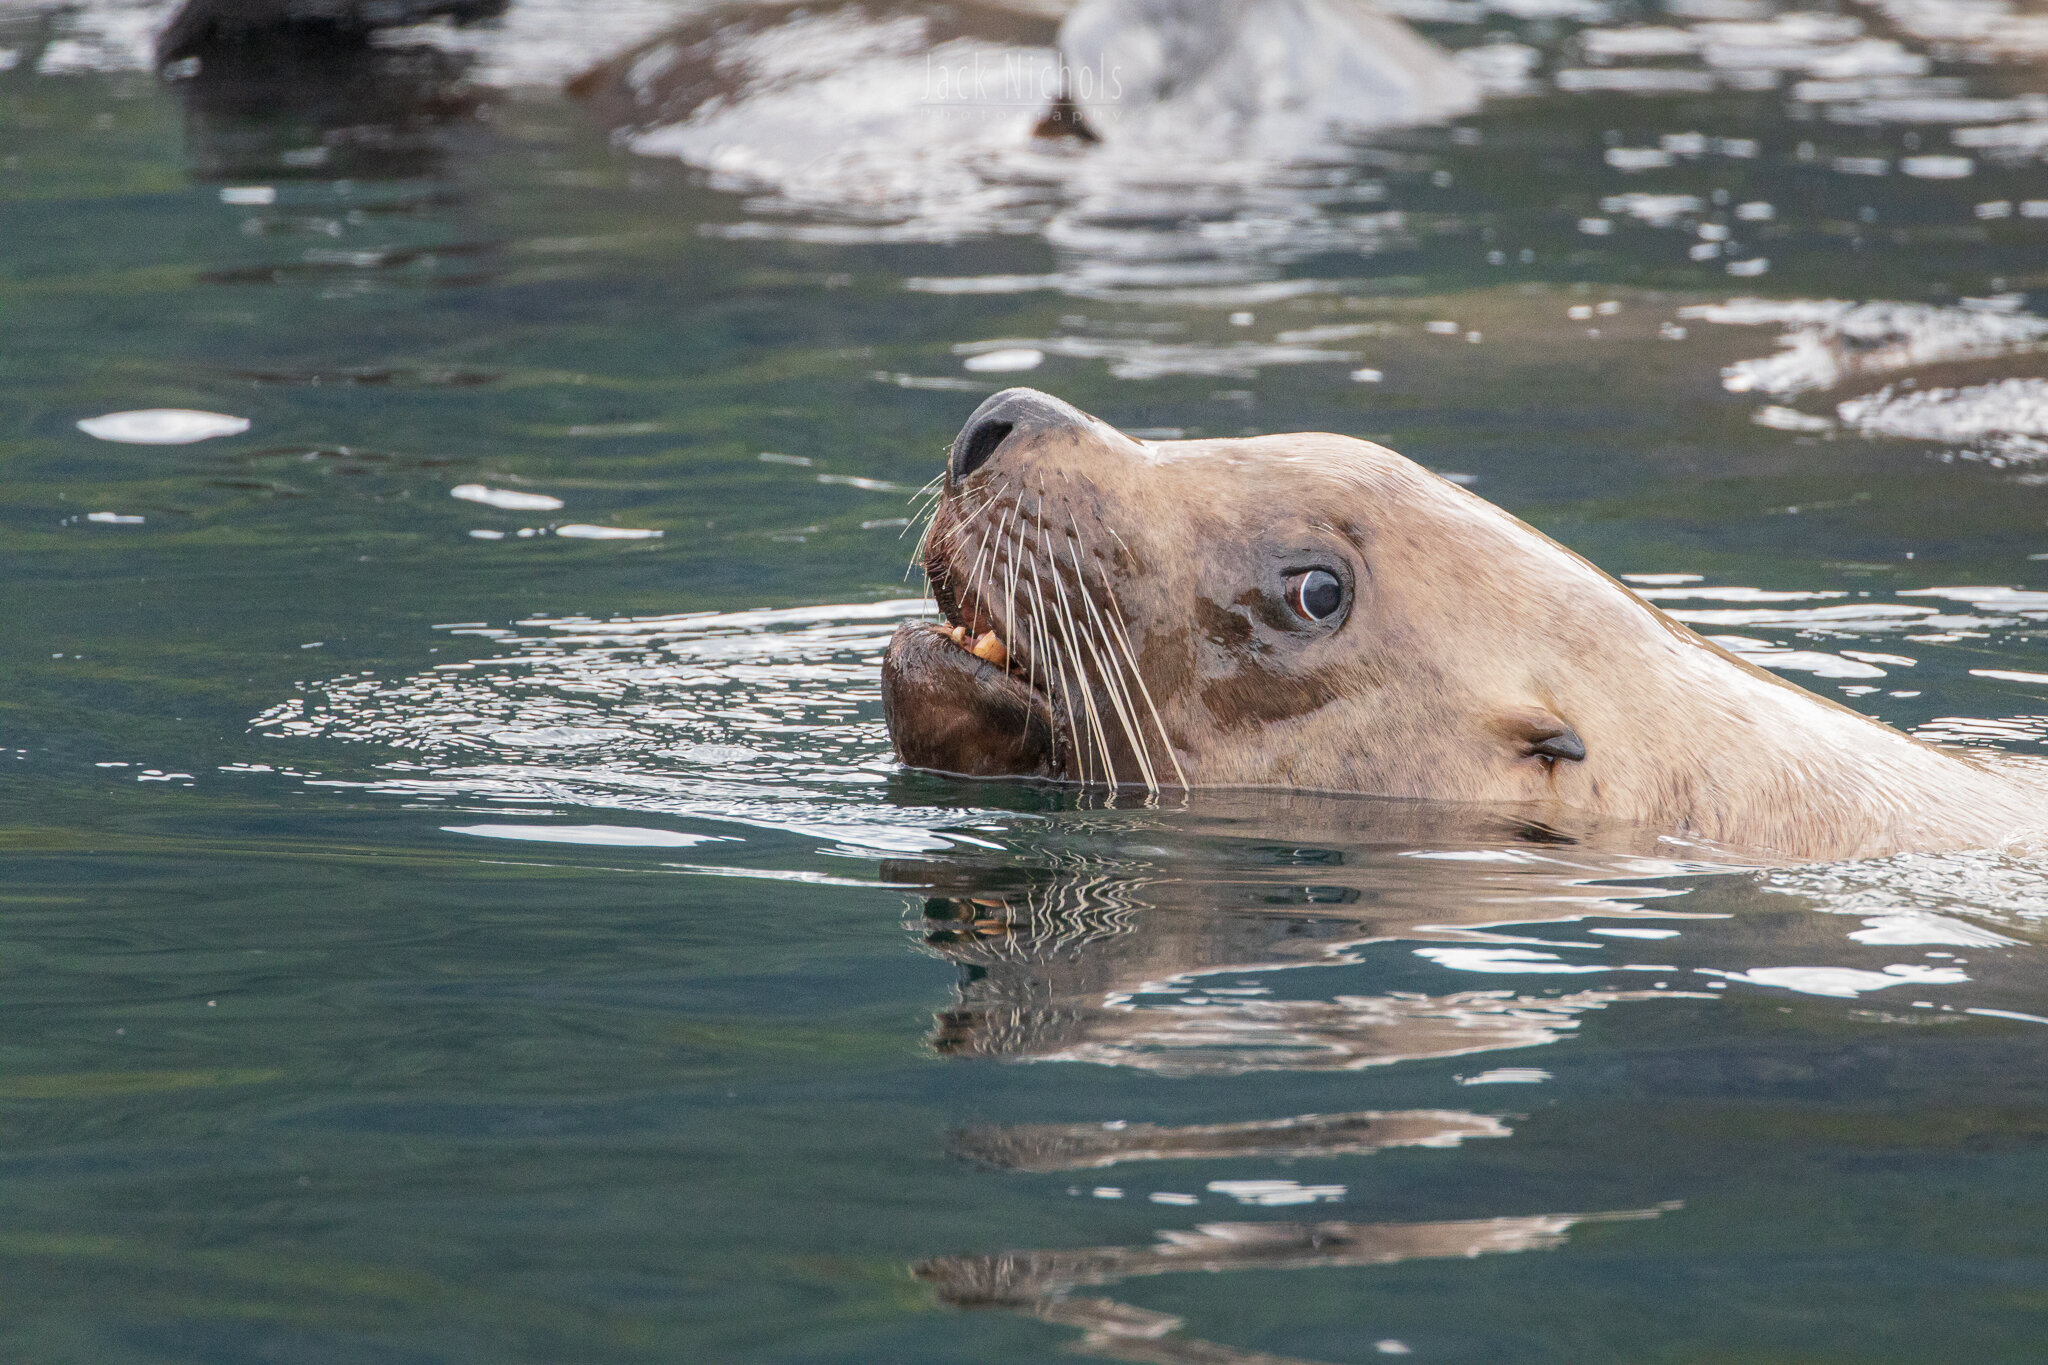 Campbell River, Water - Sea lion peeking head above water and looking at camera-20190907.jpg